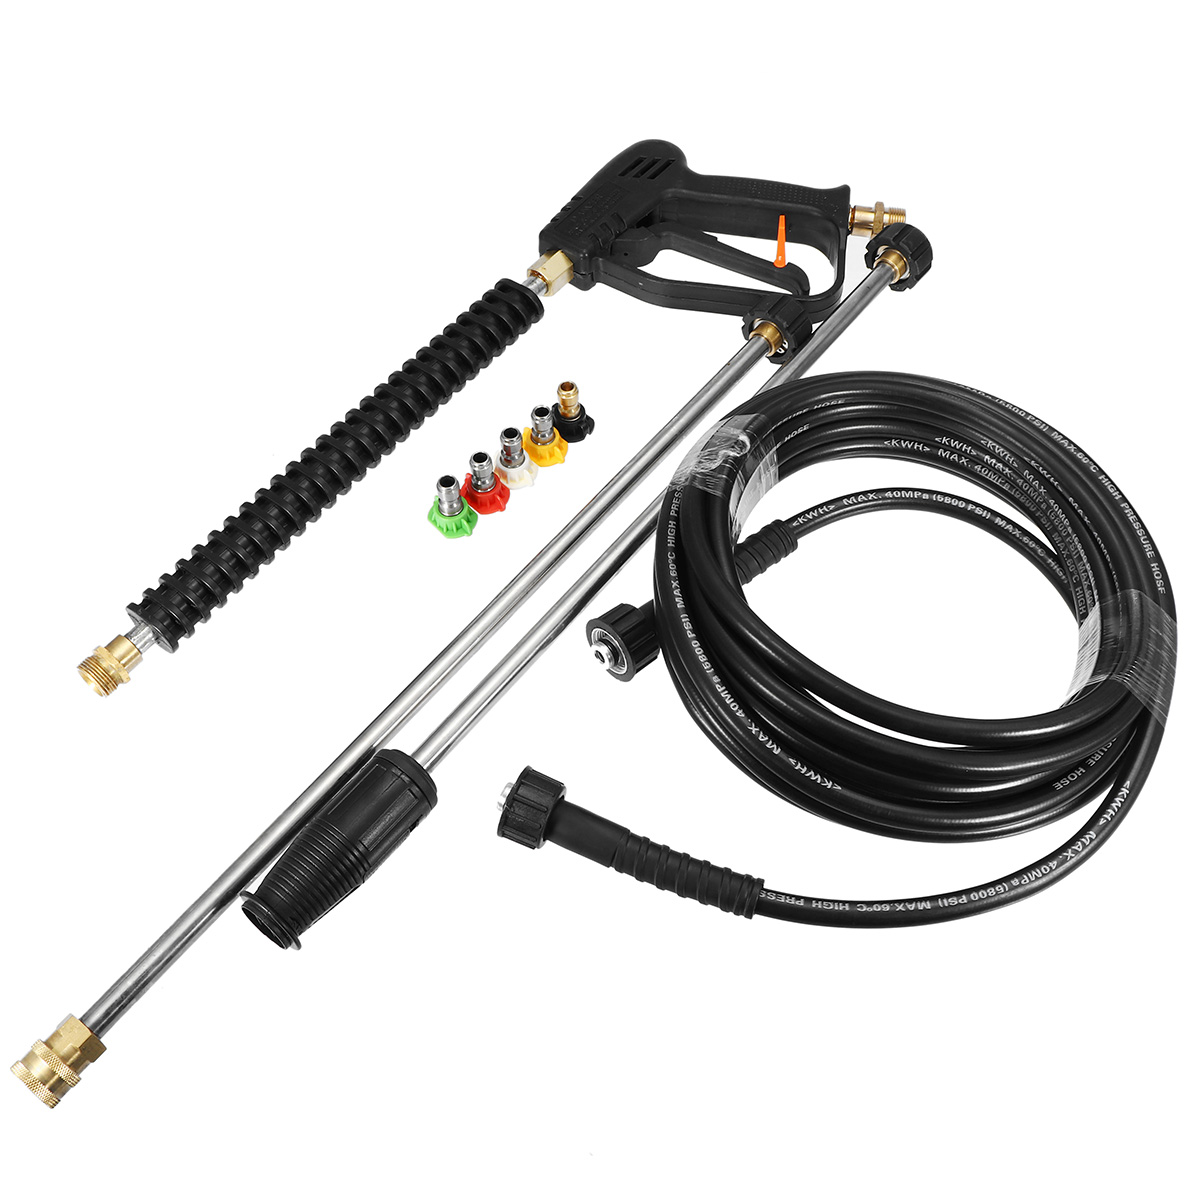 High Pressure Washer Gun Water Jet Wash Gun 3000 PSI with 5-color Pressure Water Washer Nozzles